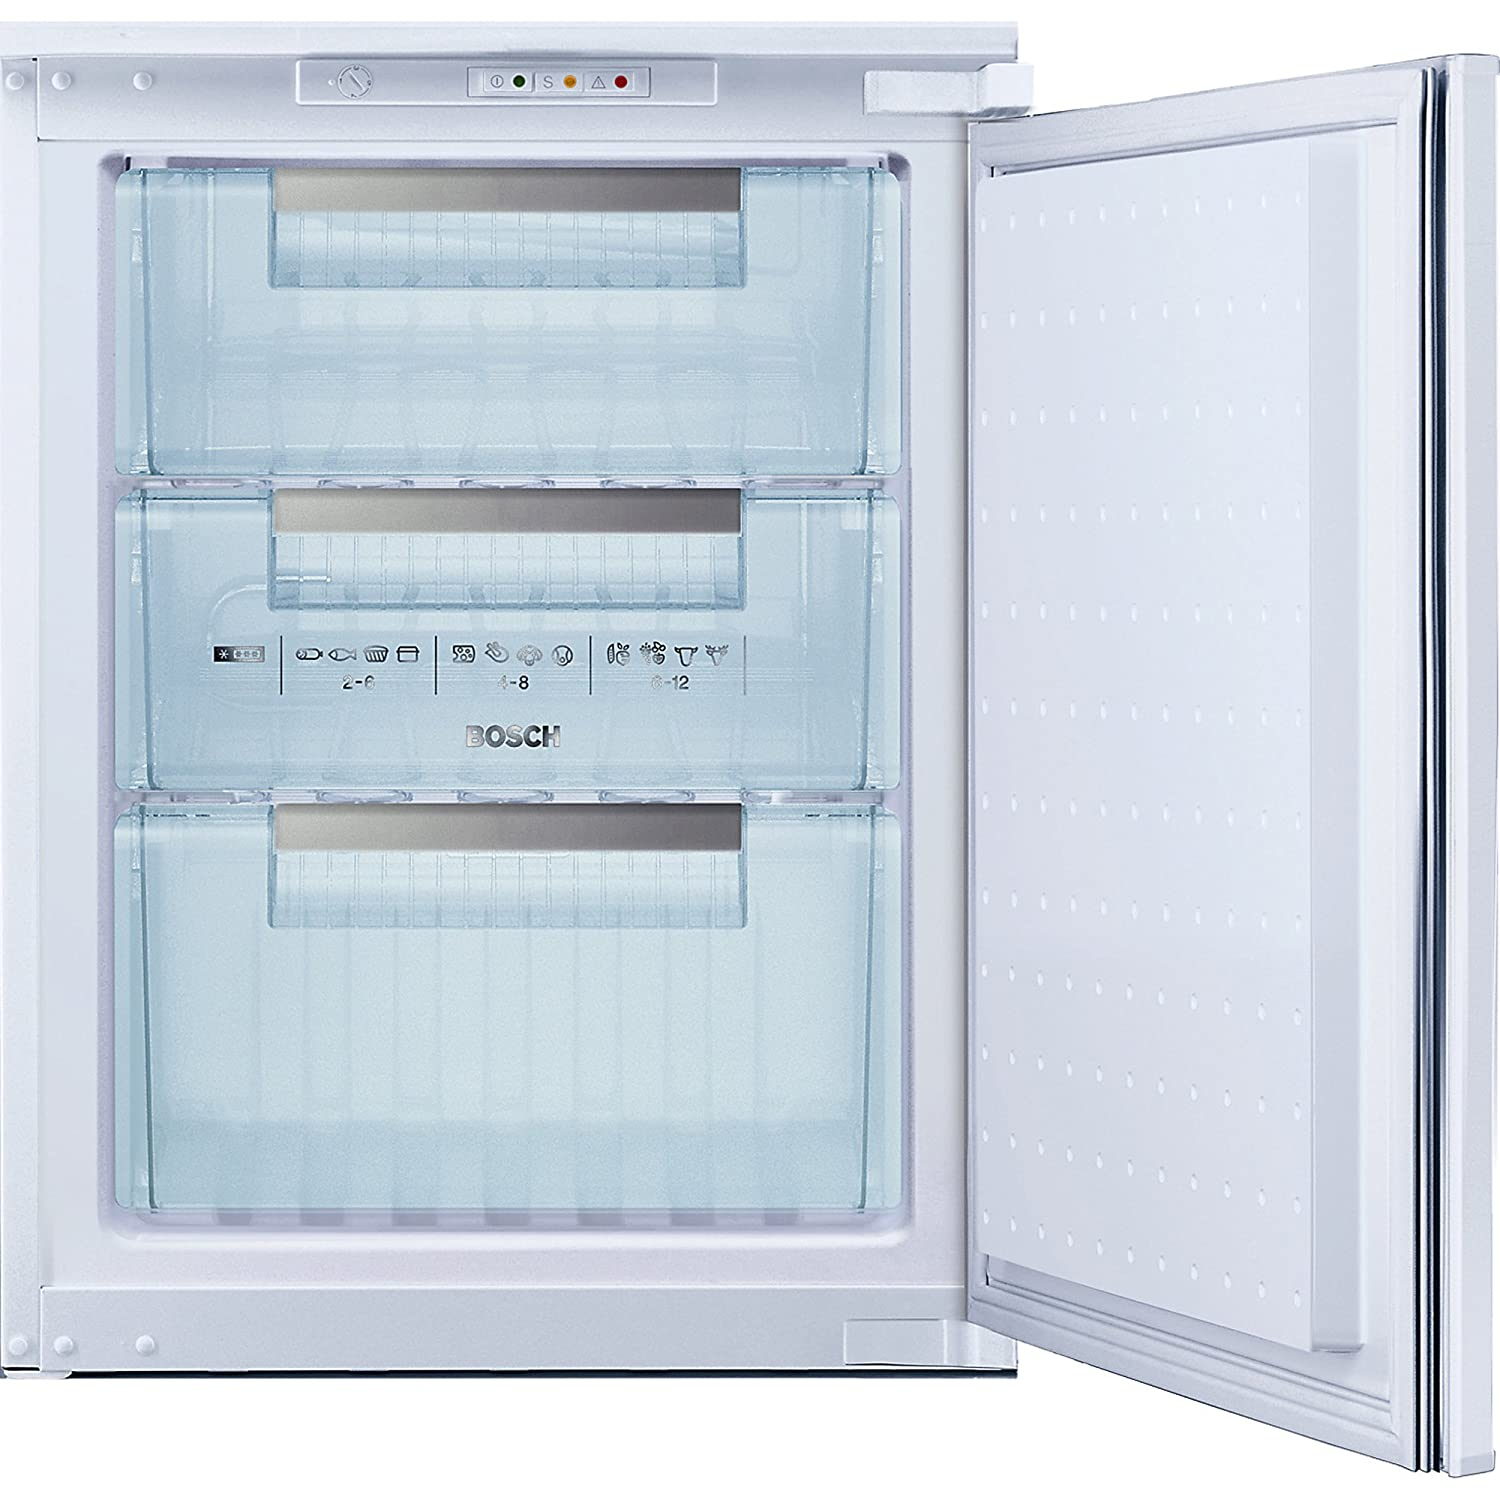 Bosch GID14A20 Upright Built-in White A+ 70L freezer - freezers (Built-in, Upright, A+, White, 4*, SN, N, ST)